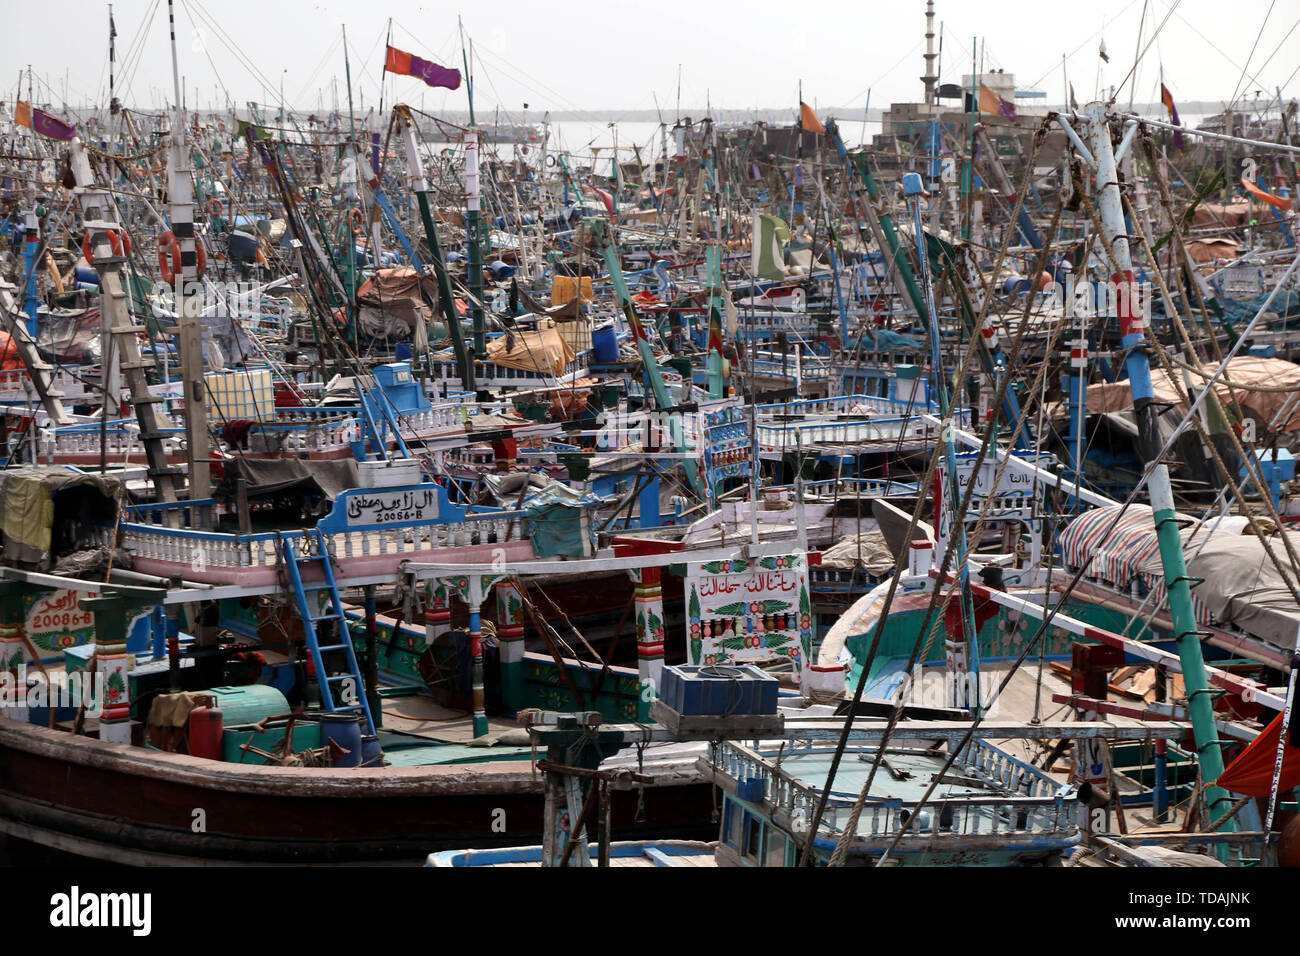 Karachi, Pakistan. 14th June, 2019. Fishing boats are anchored at the Karachi harbor in Karachi, southern Pakistan, on June 14, 2019. The Pakistan Meteorological Department has issued a red alert warning regarding the tropical cyclone 'Vayu' and heatwave for the country's southern Sindh province, local reports said on Thursday. Credit: Stringer/Xinhua/Alamy Live News - Stock Image